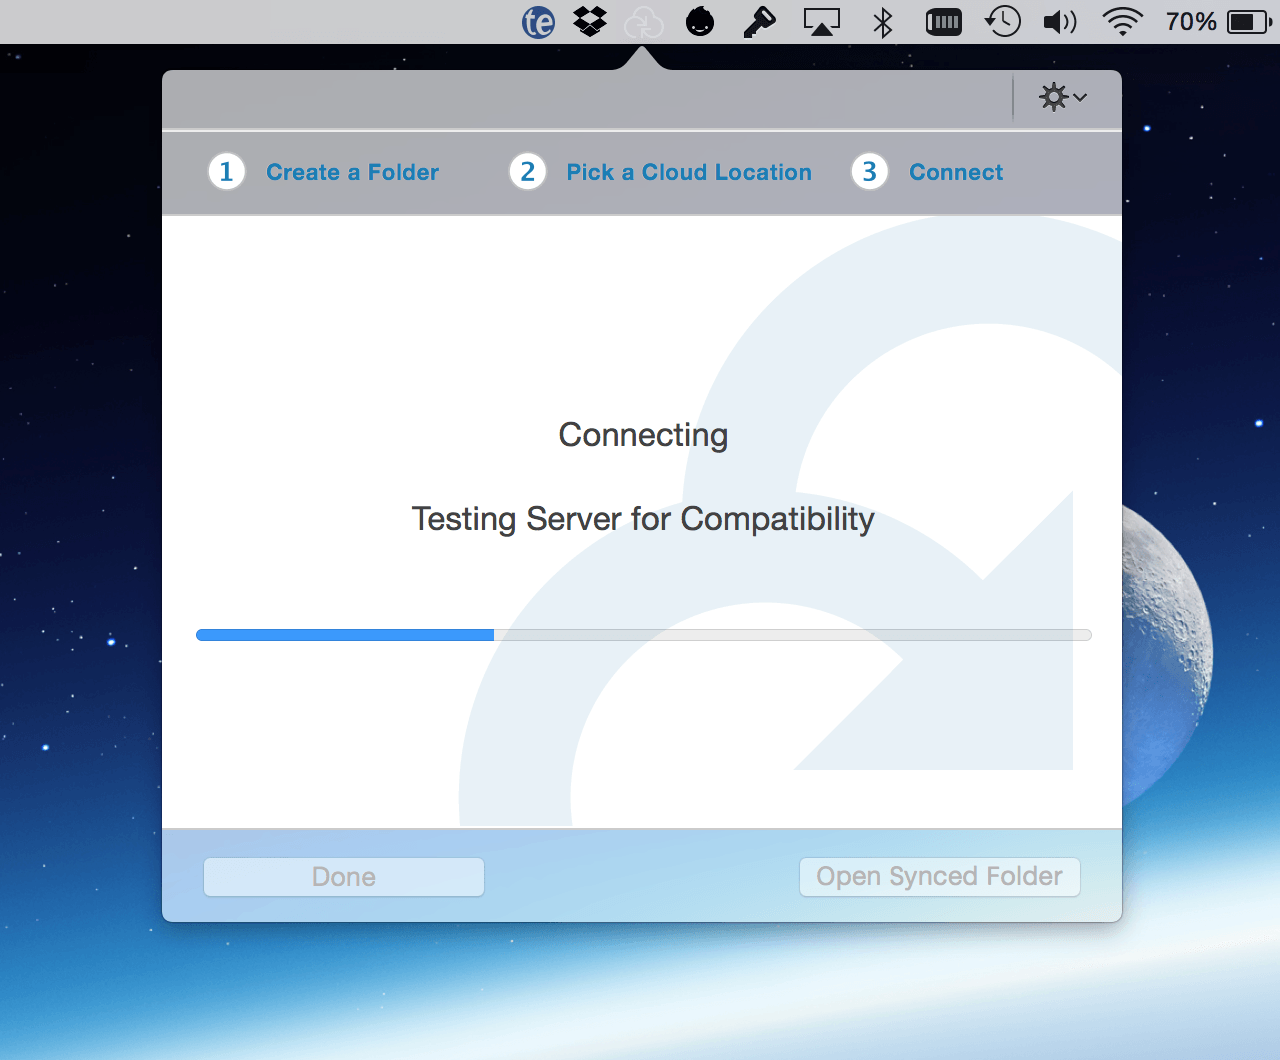 OmniOutliner 4 5 for Mac User Manual - Getting Synced with